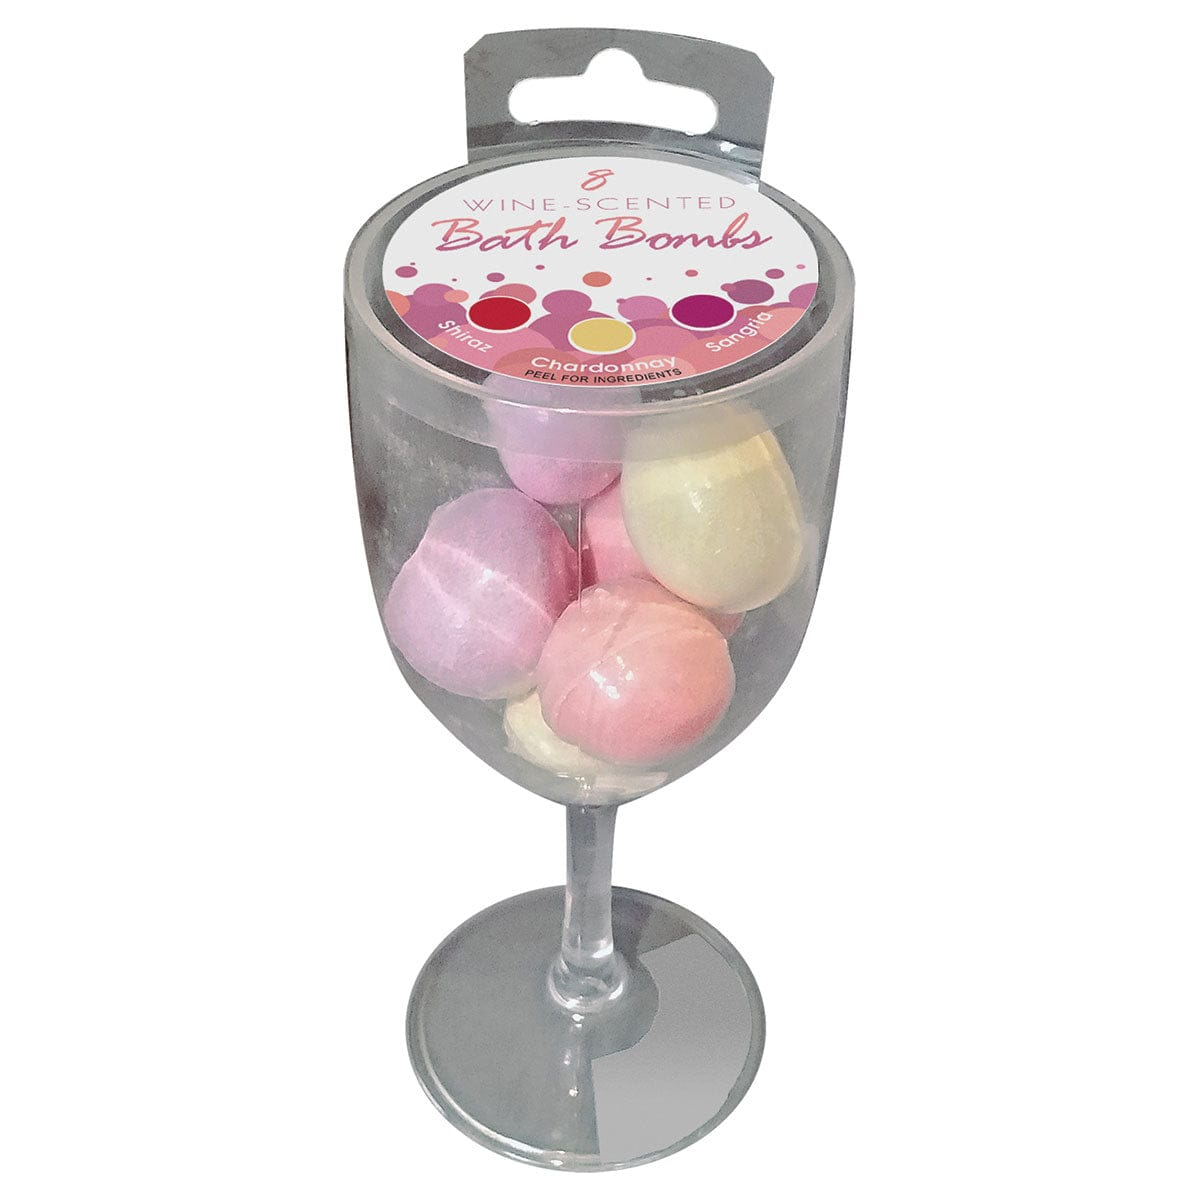 Wine-Scented Bath Bombs by Kheper Games - rolik